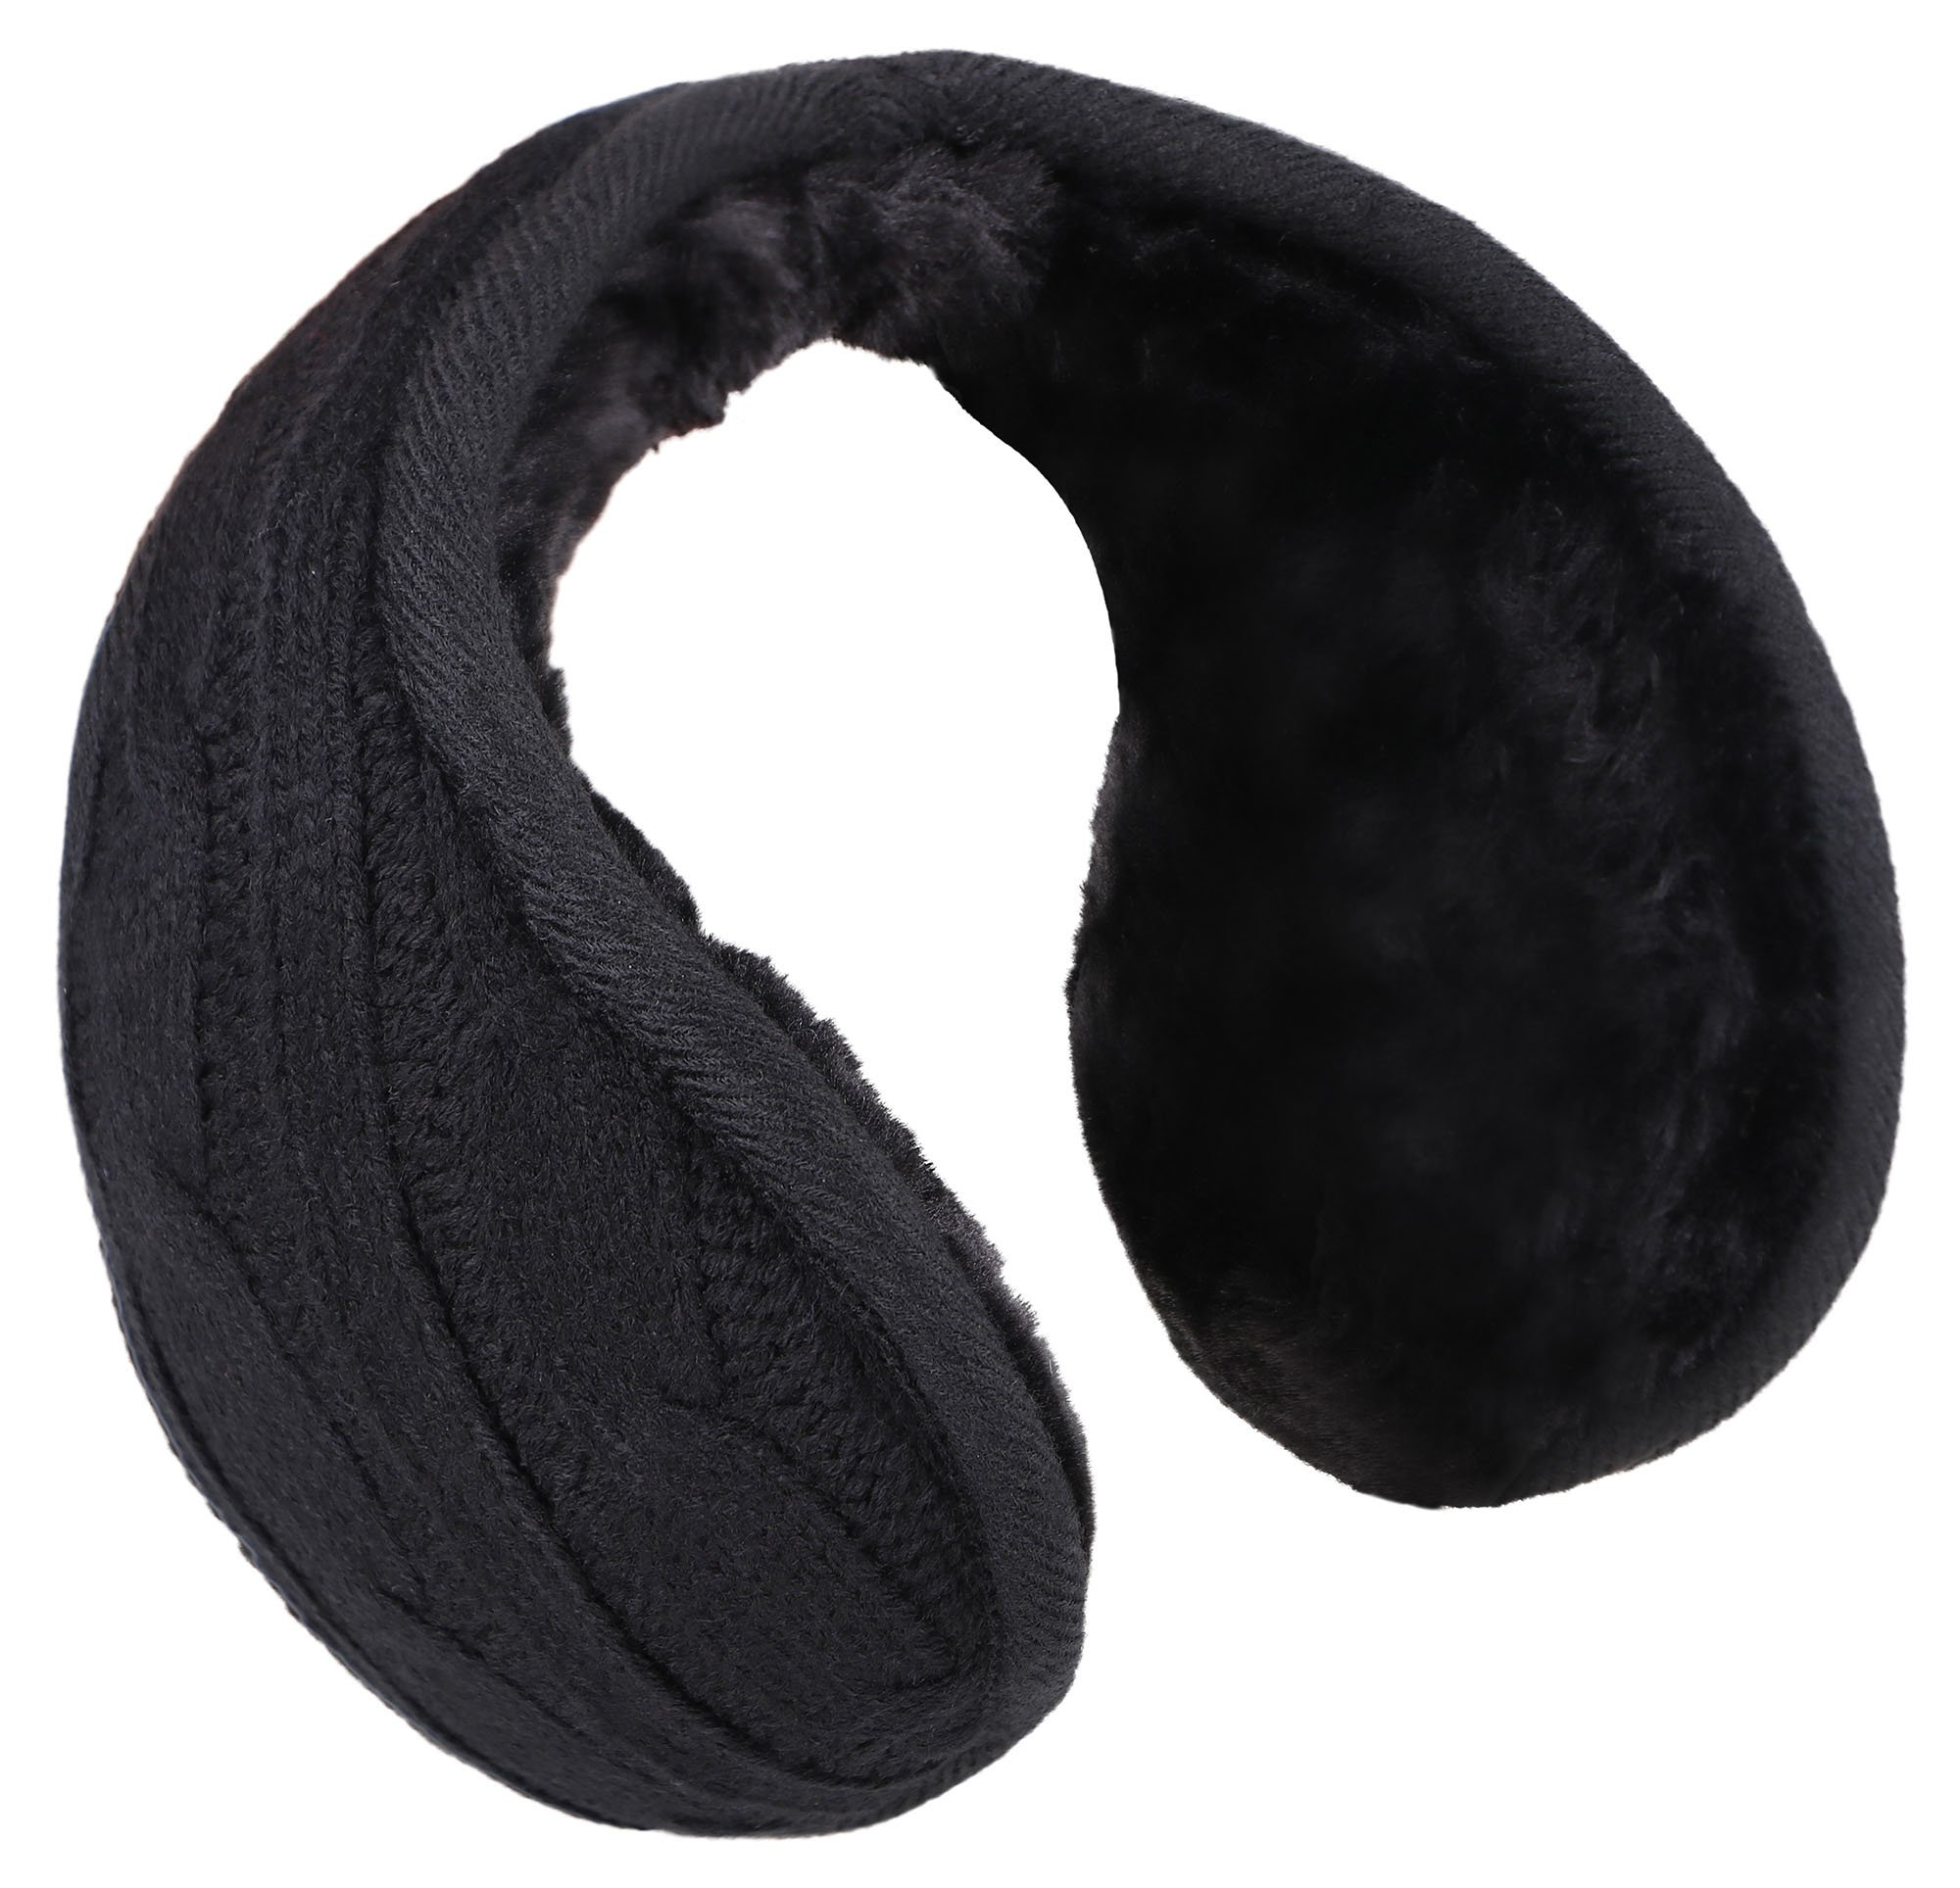 Men's Knit Earmuffs Earwarmer Fur Lined Winter Outdoor Ear Muffs, Black